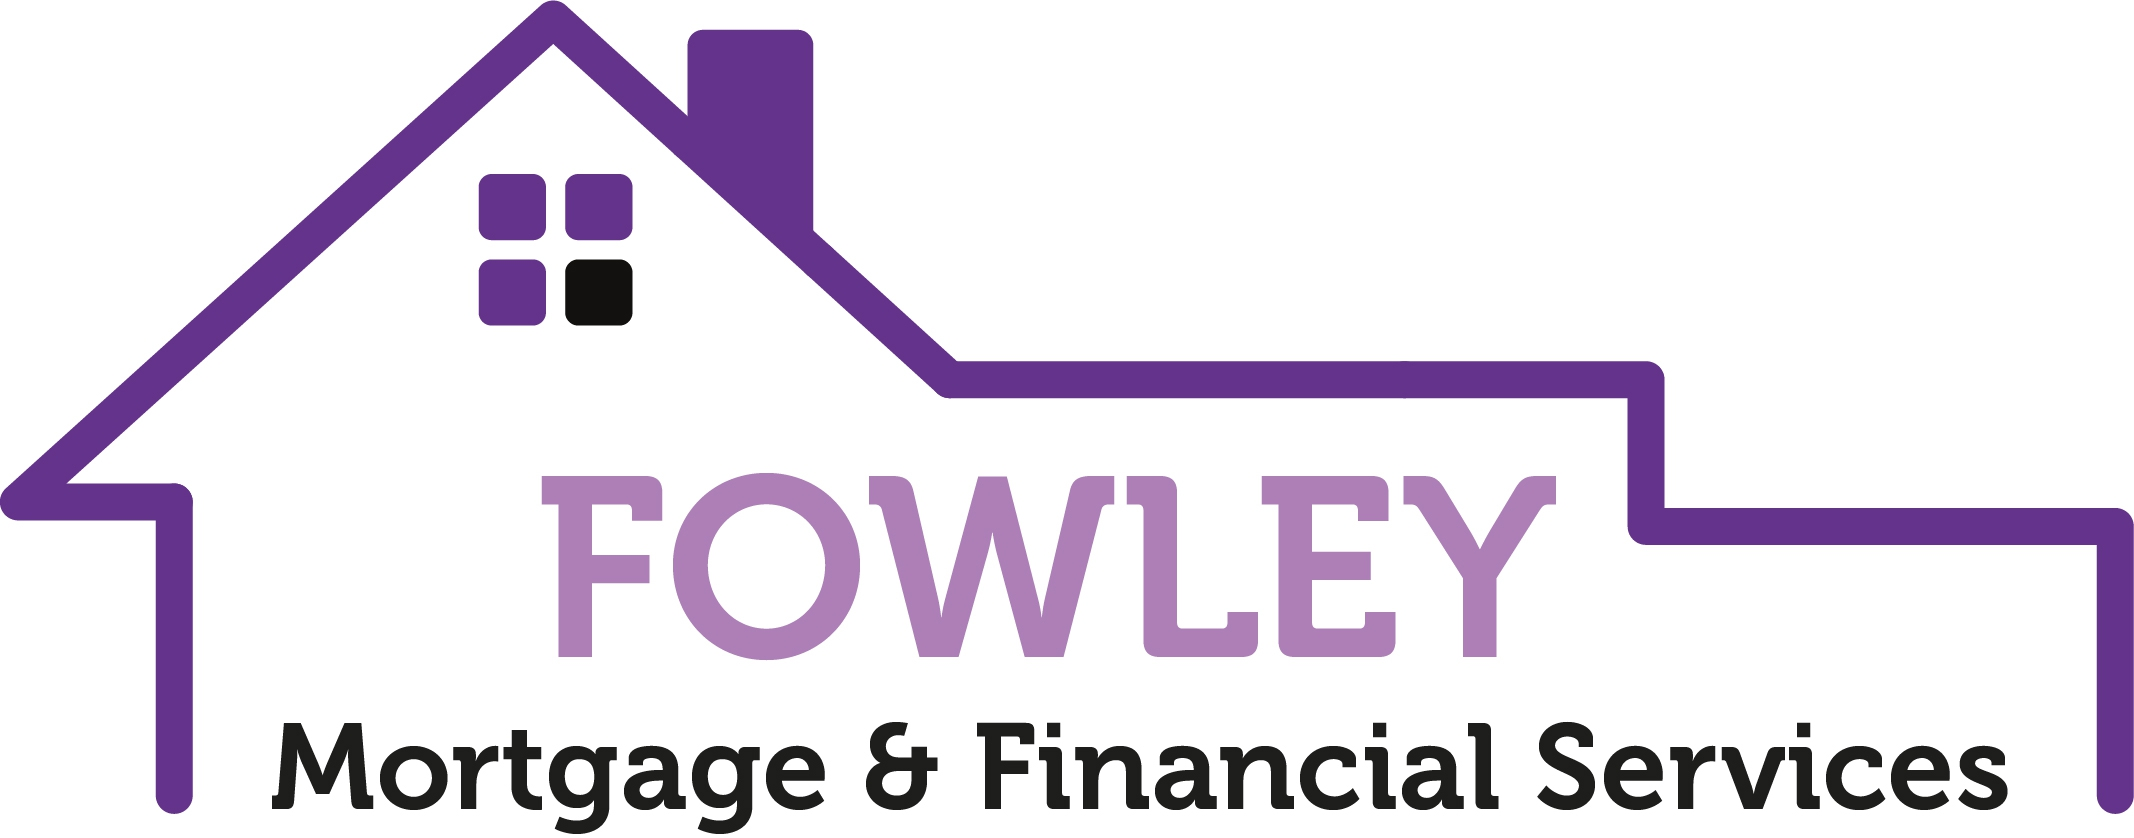 Fowley Mortgage & Financial Services